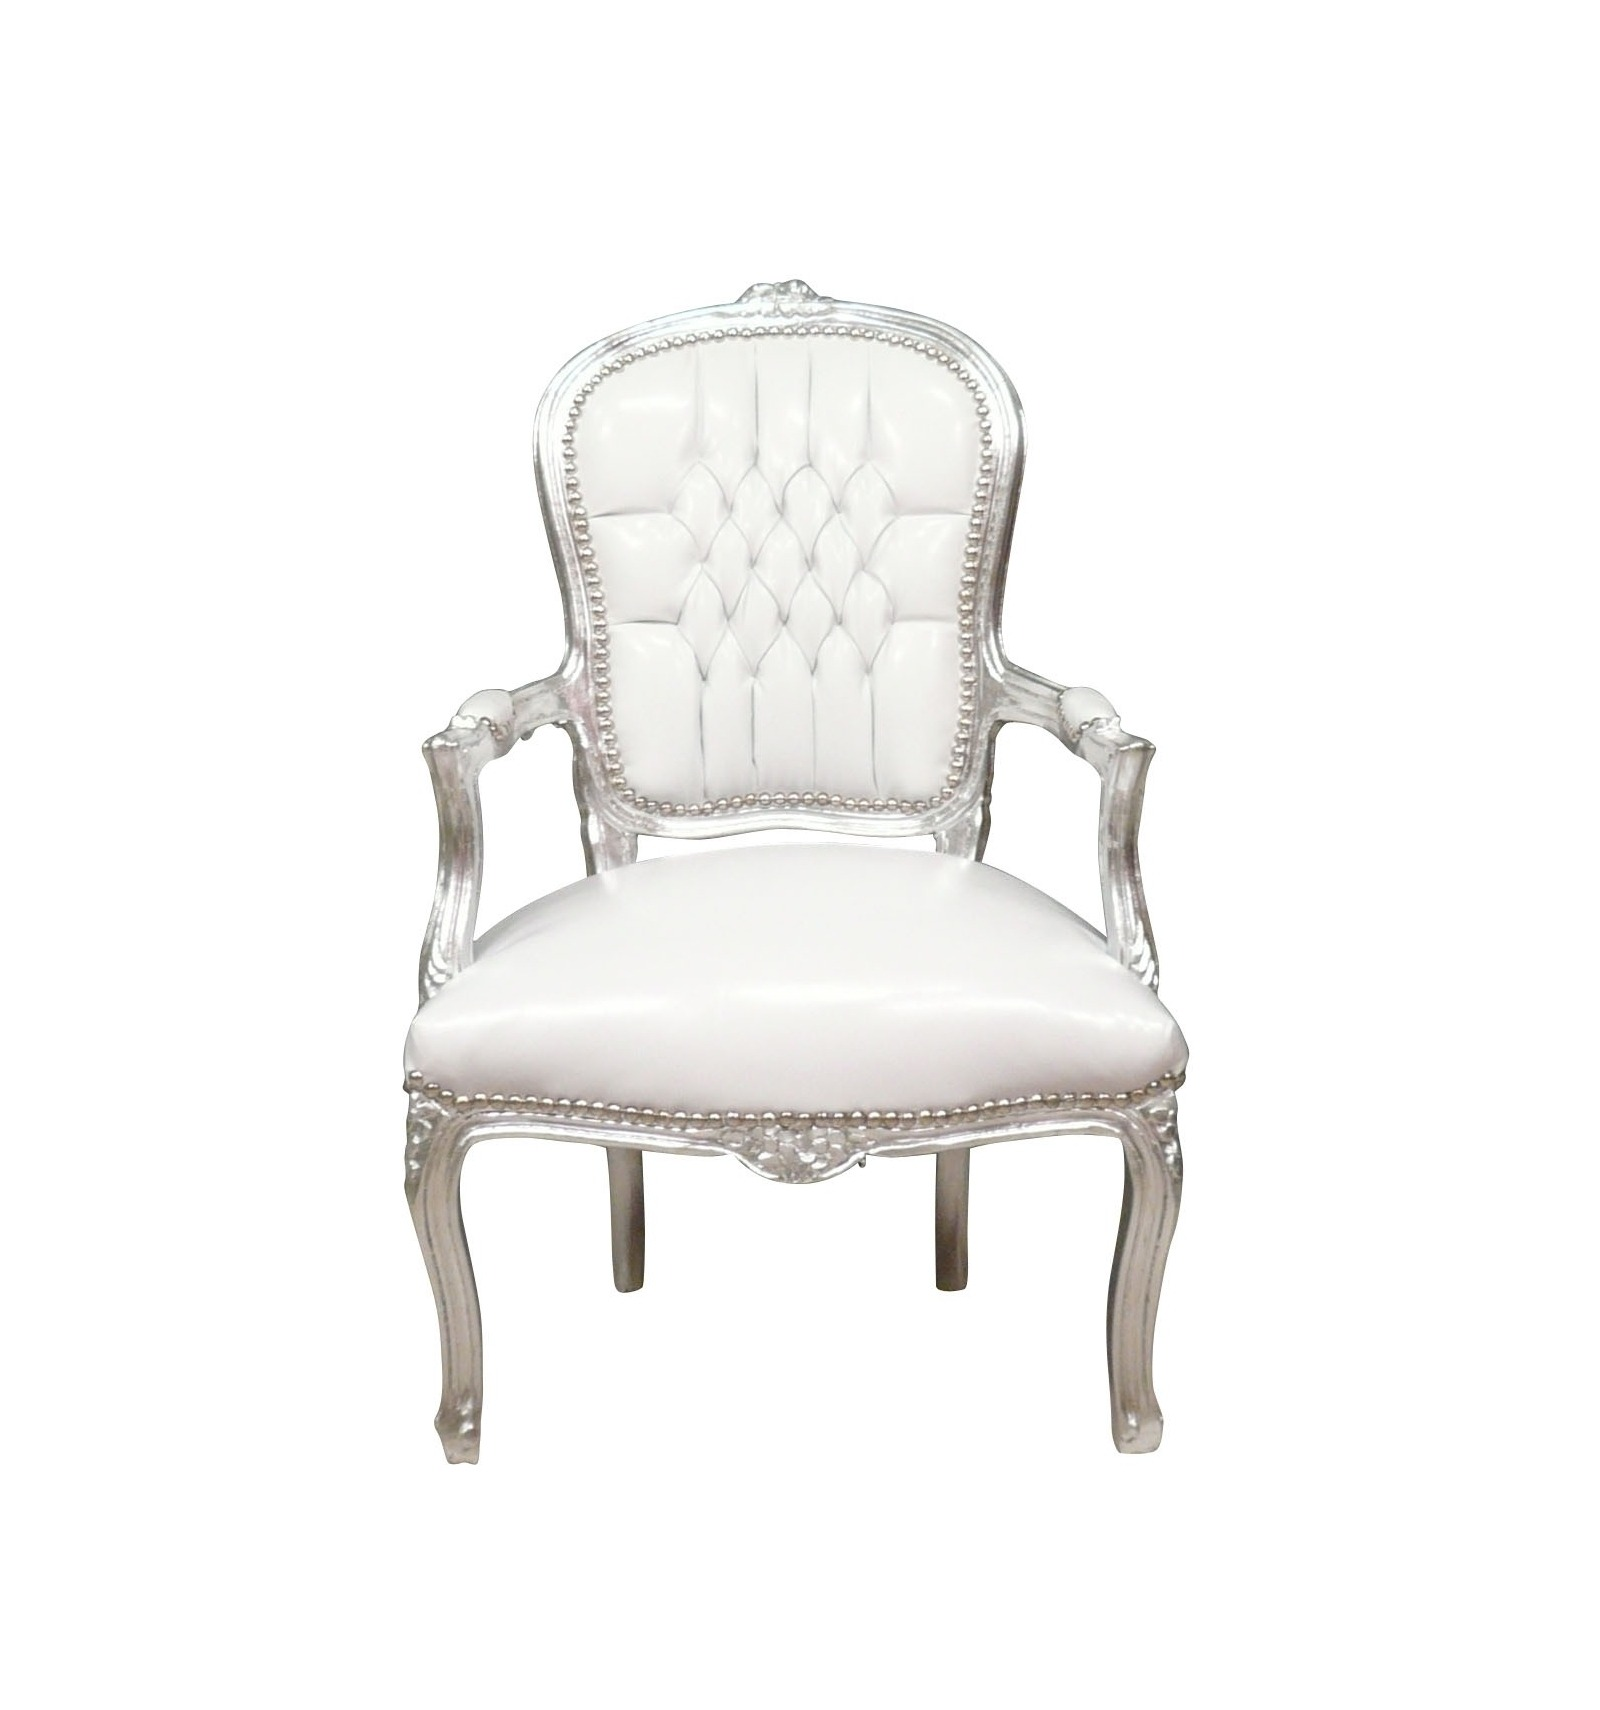 armchair baroque louis xv white and silver louis xv. Black Bedroom Furniture Sets. Home Design Ideas